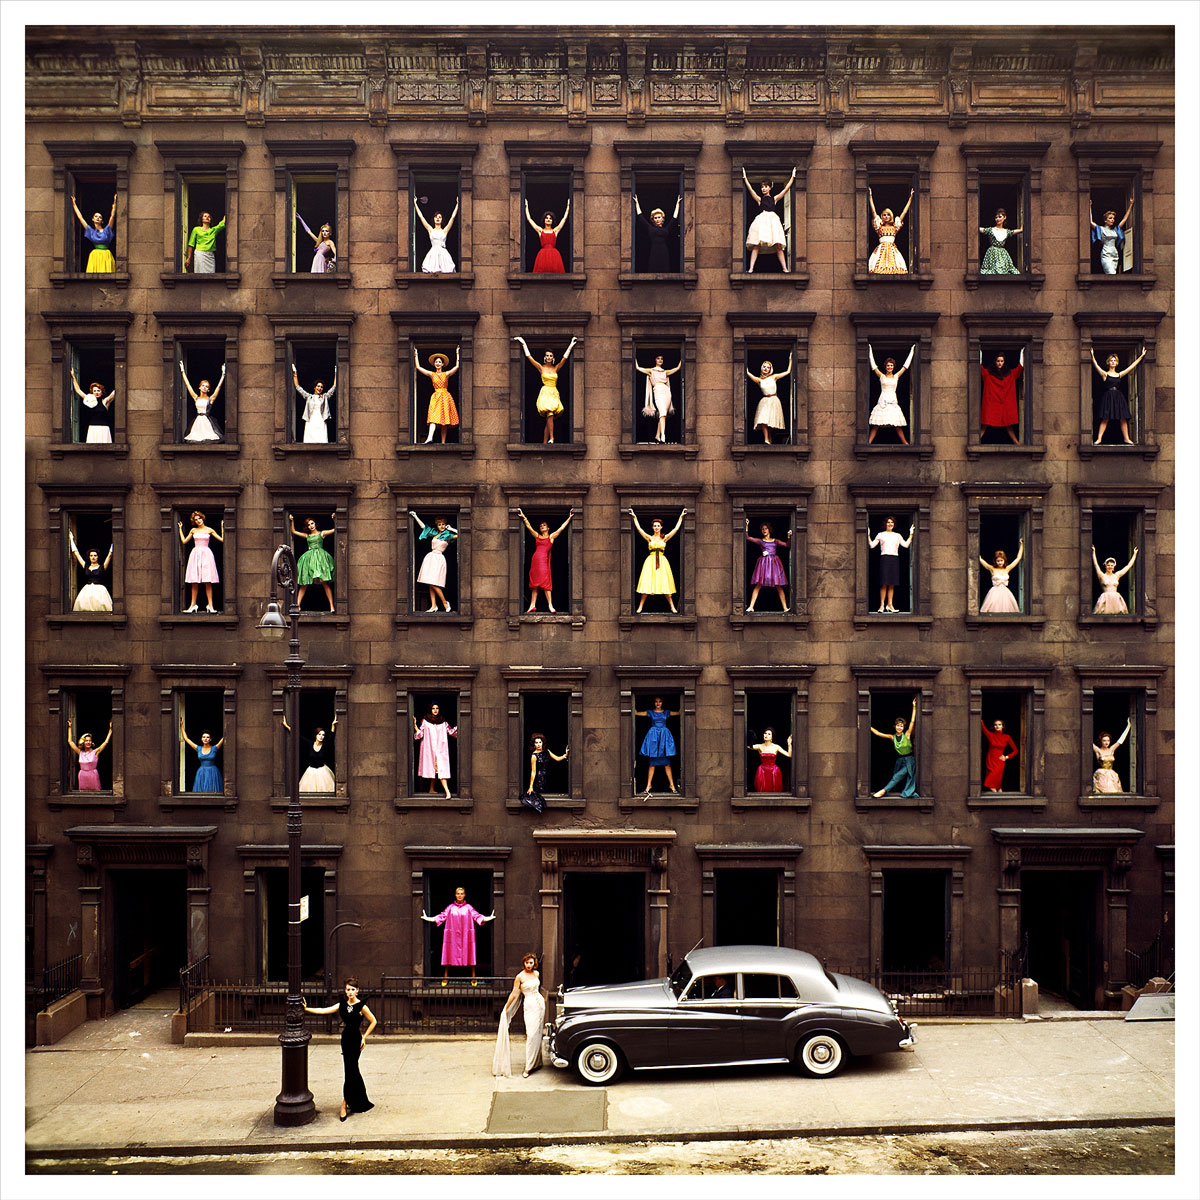 Ormond-Gigli,-Girls-in-the-Windows,-New-York,-1960